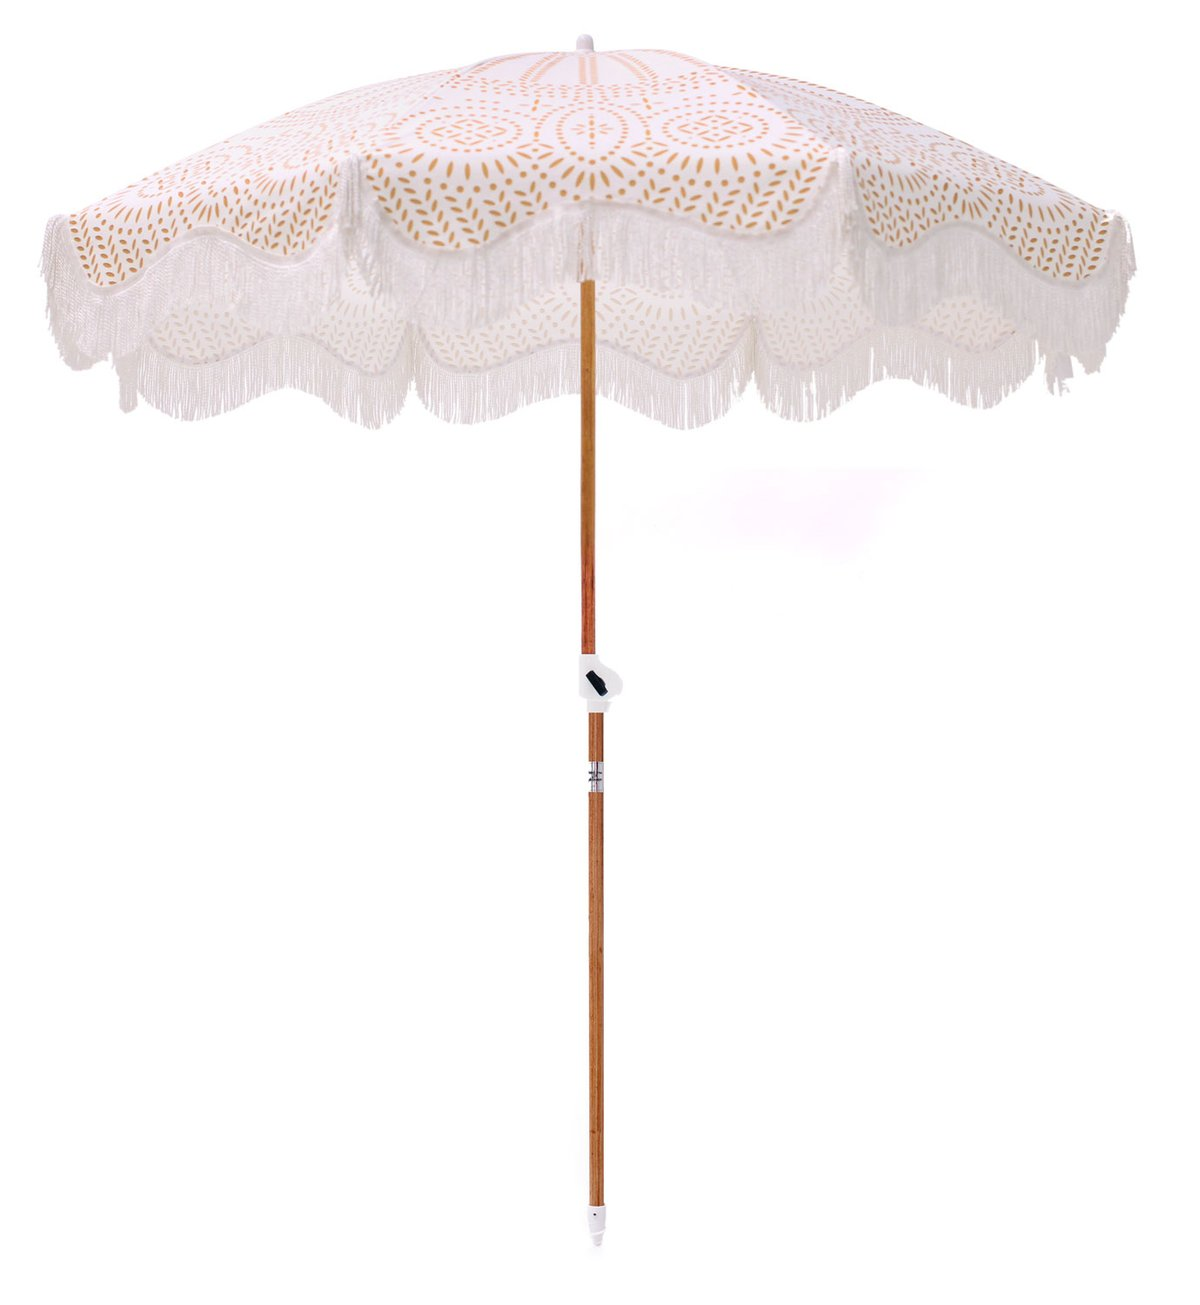 Business and Pleasure- Eyelet Holiday Beach Umbrella